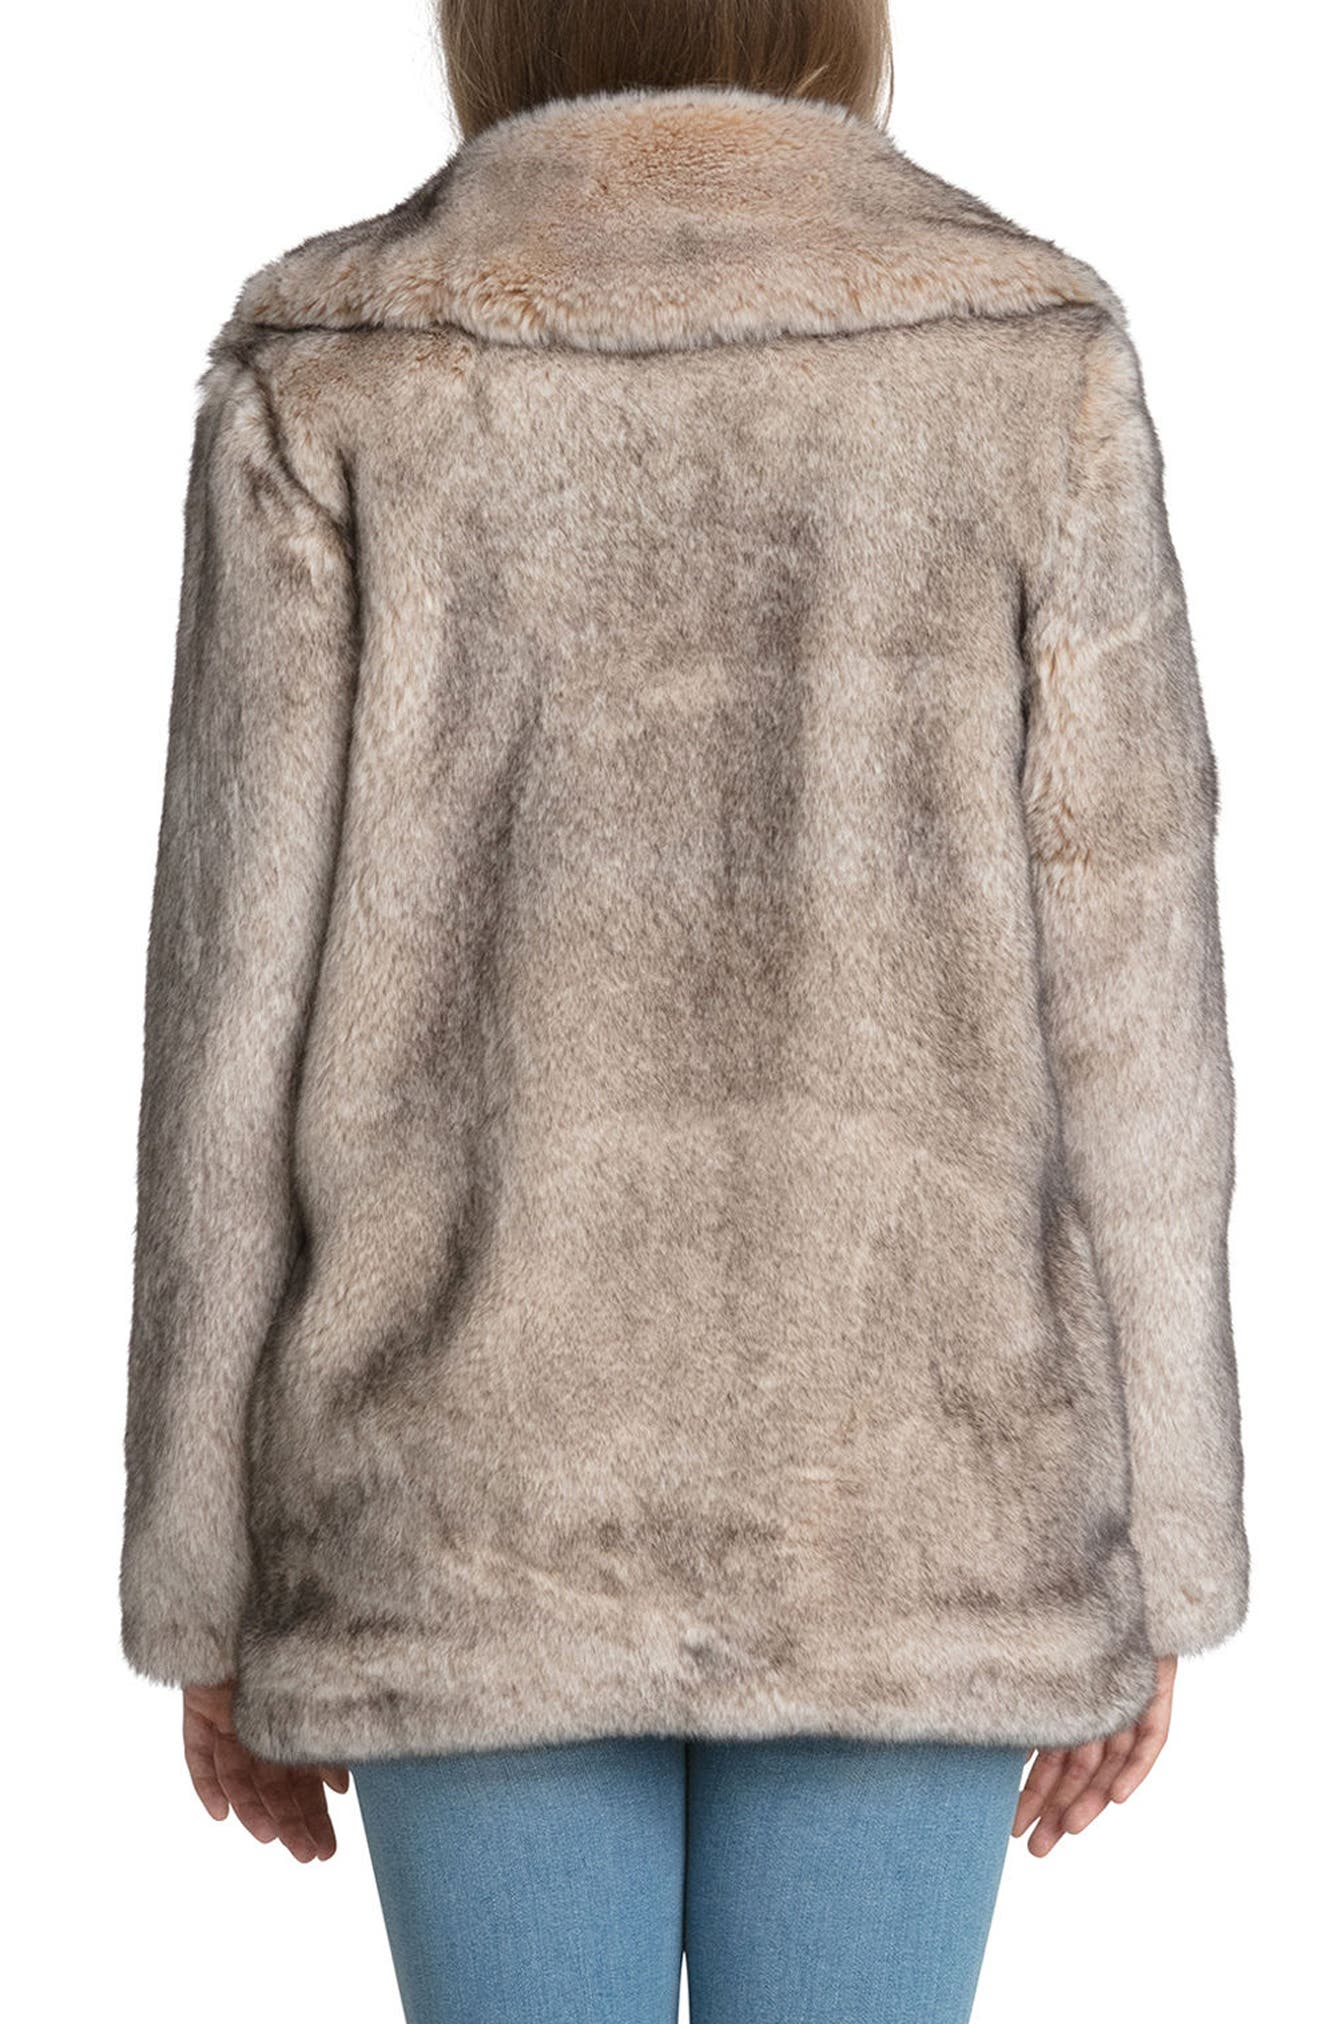 Faux Fur Swing Coat,                             Alternate thumbnail 2, color,                             257